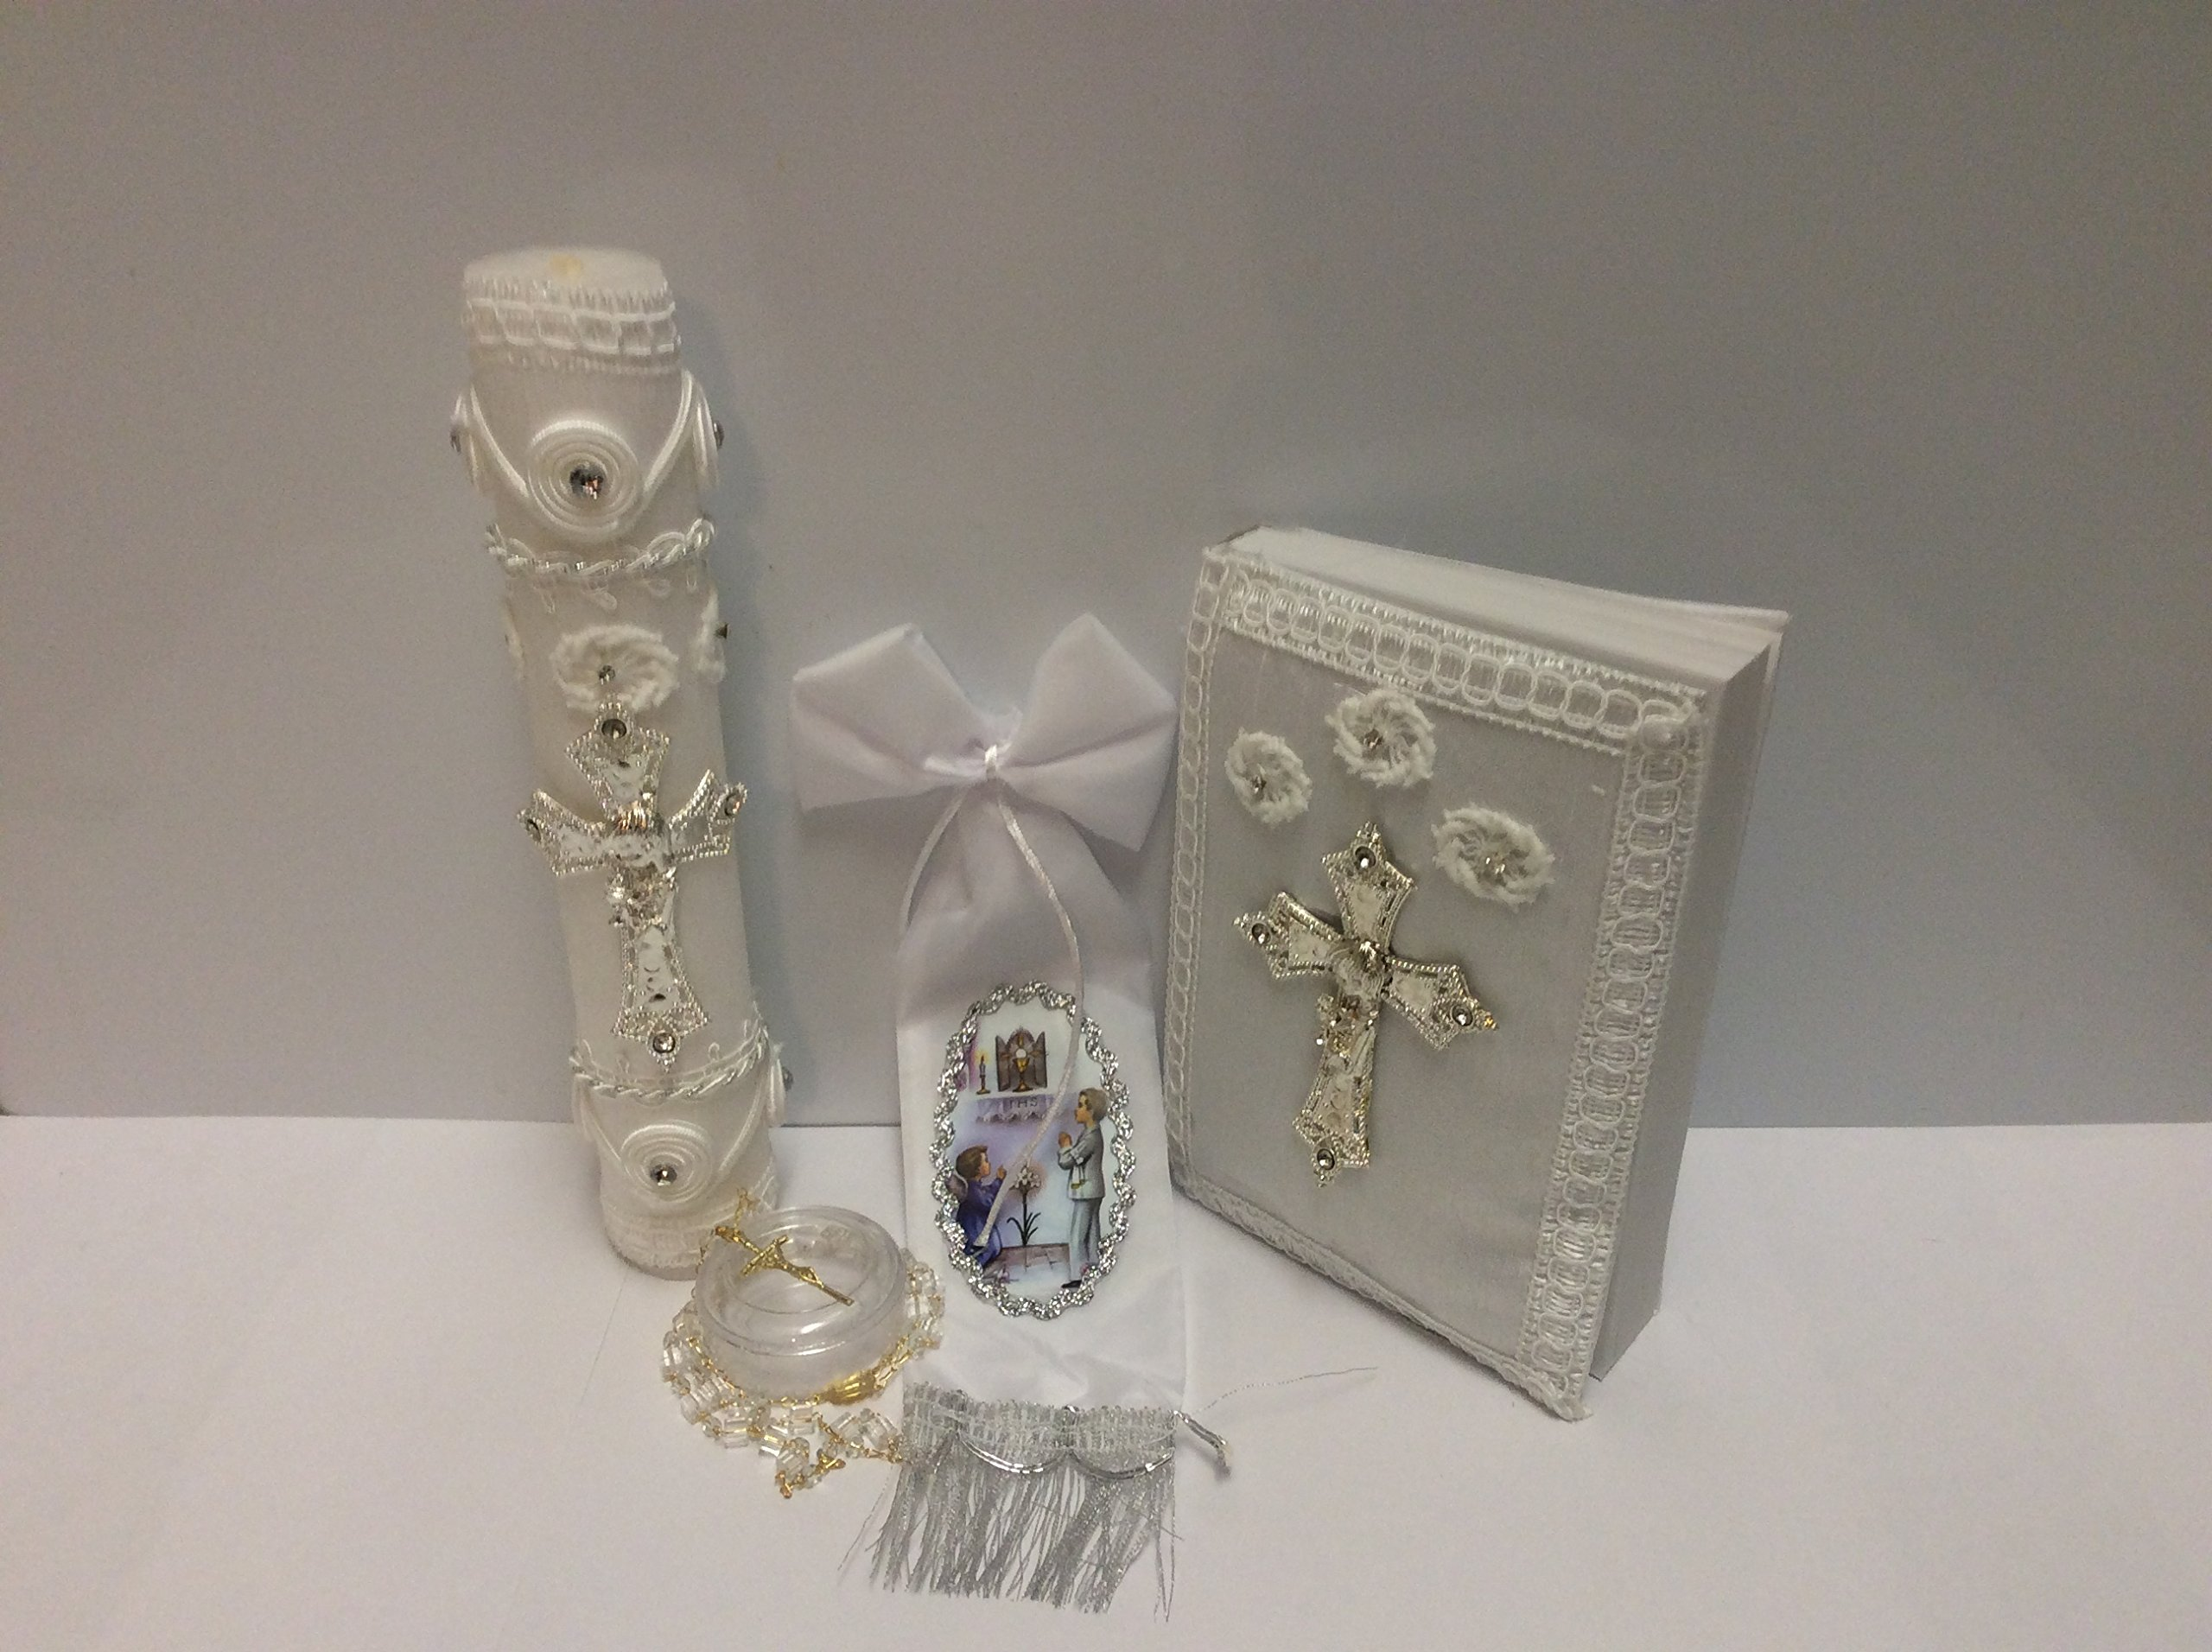 Casa Ixta First communion candle set with silver cross detail